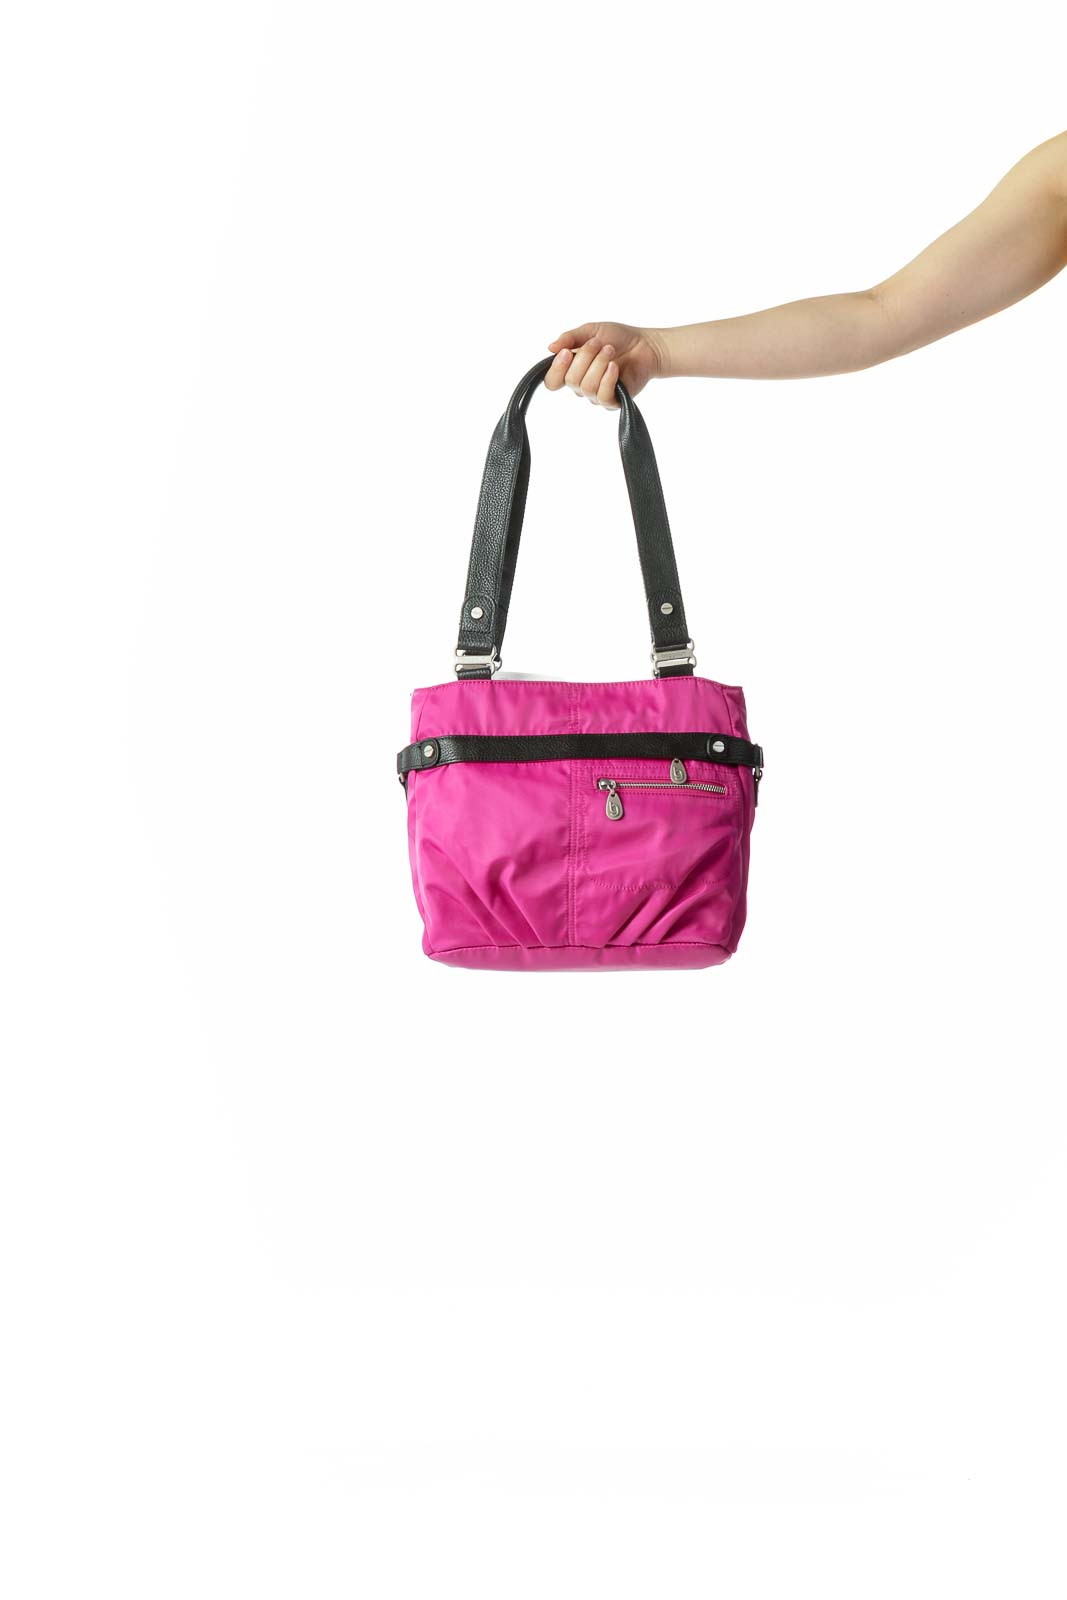 Magenta Pink Black Hardware Zippered Shoulder Bag